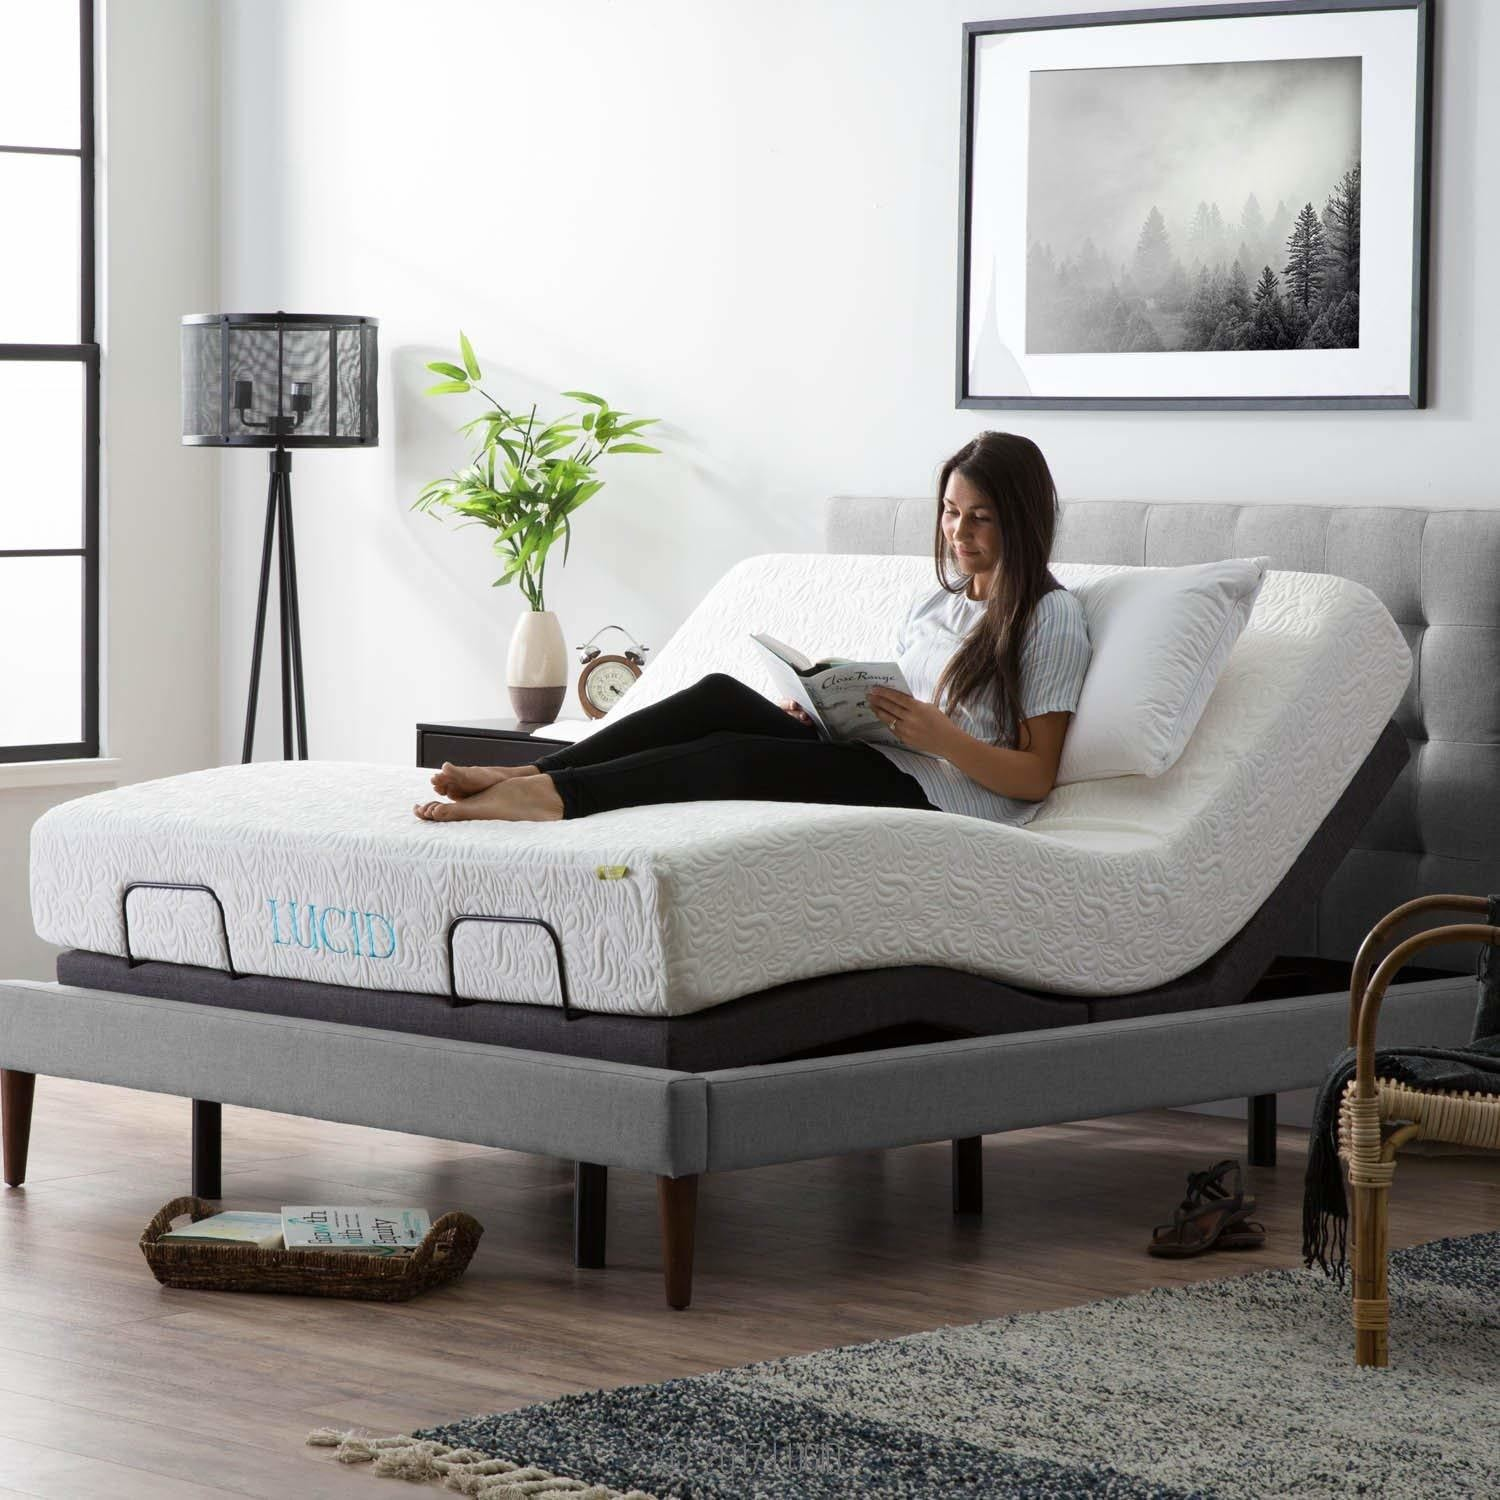 Best Bed 2019 The Best Adjustable Beds For 2019   See It Now   Lonny